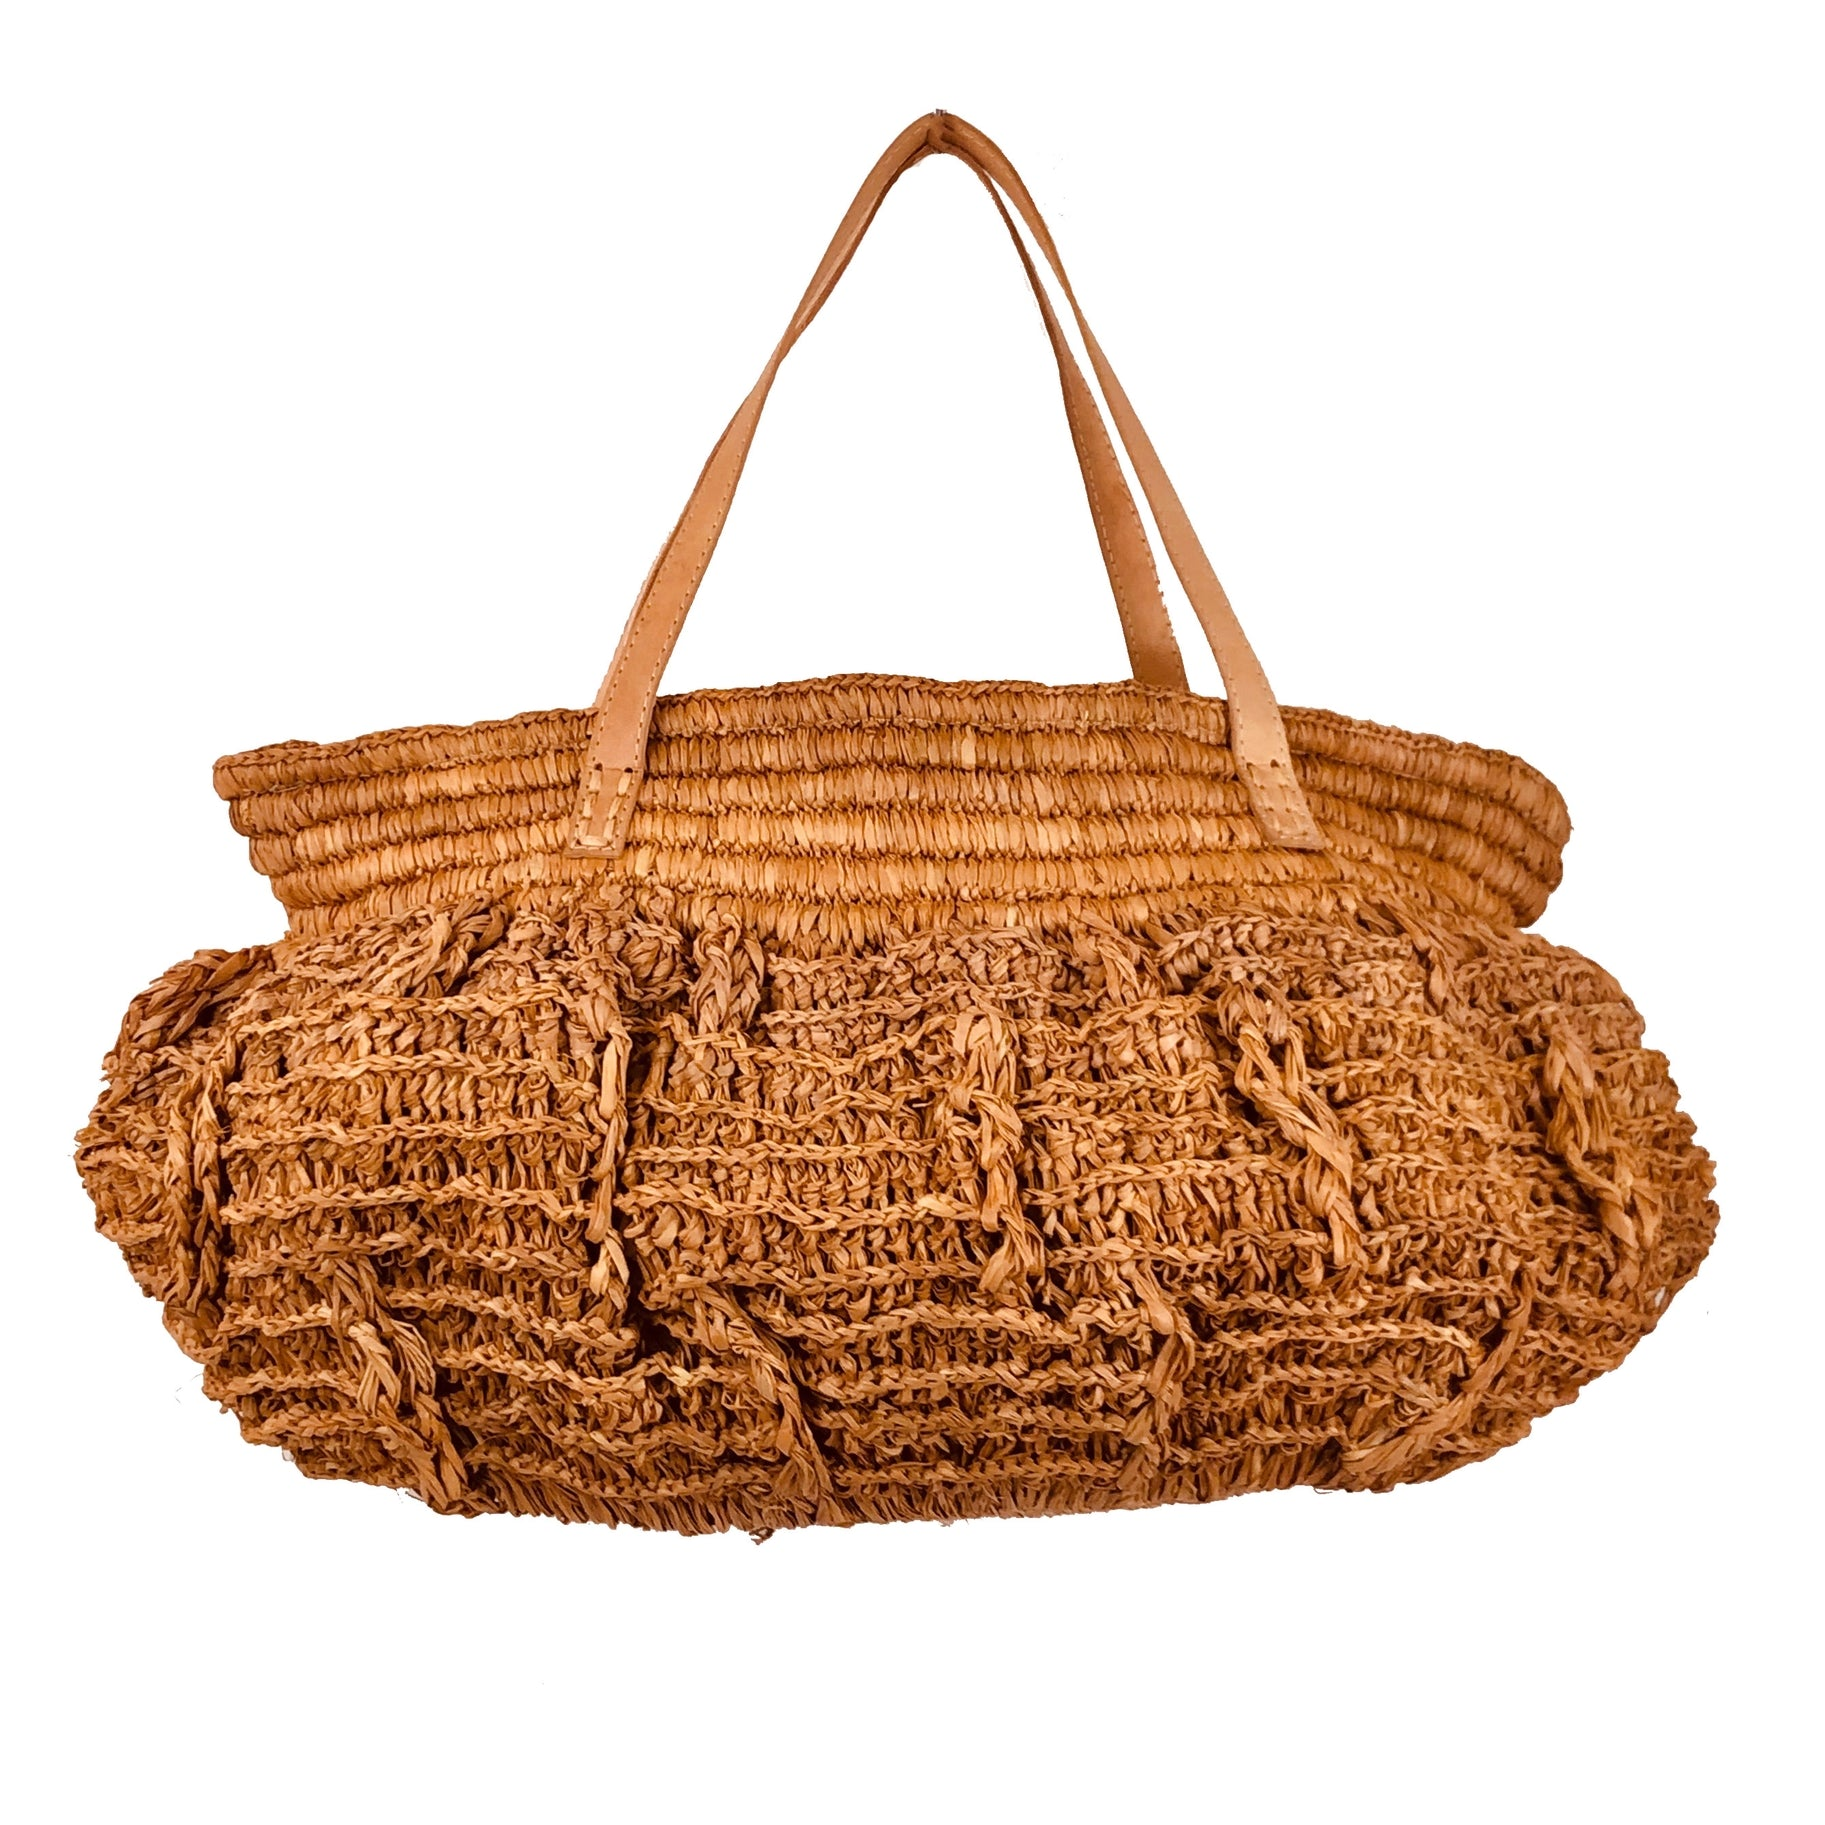 Bella Crochet Straw Handbag - Tobacco